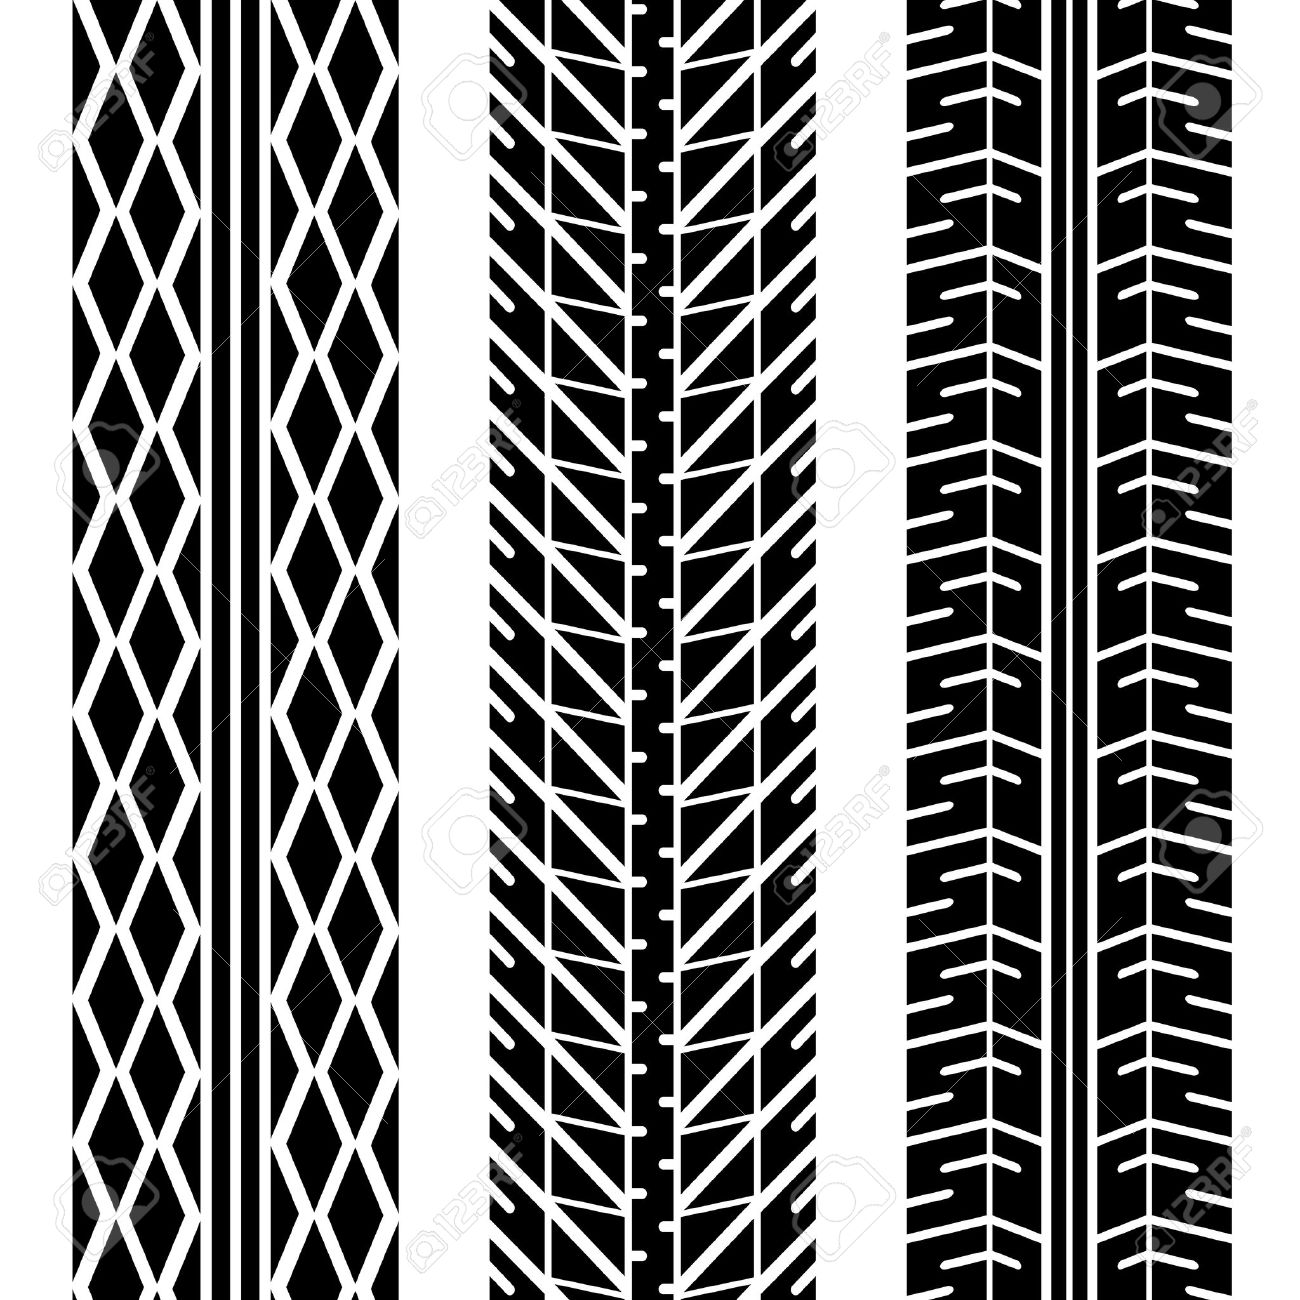 Three Different Tire Tread Patterns In Black And White Royalty.